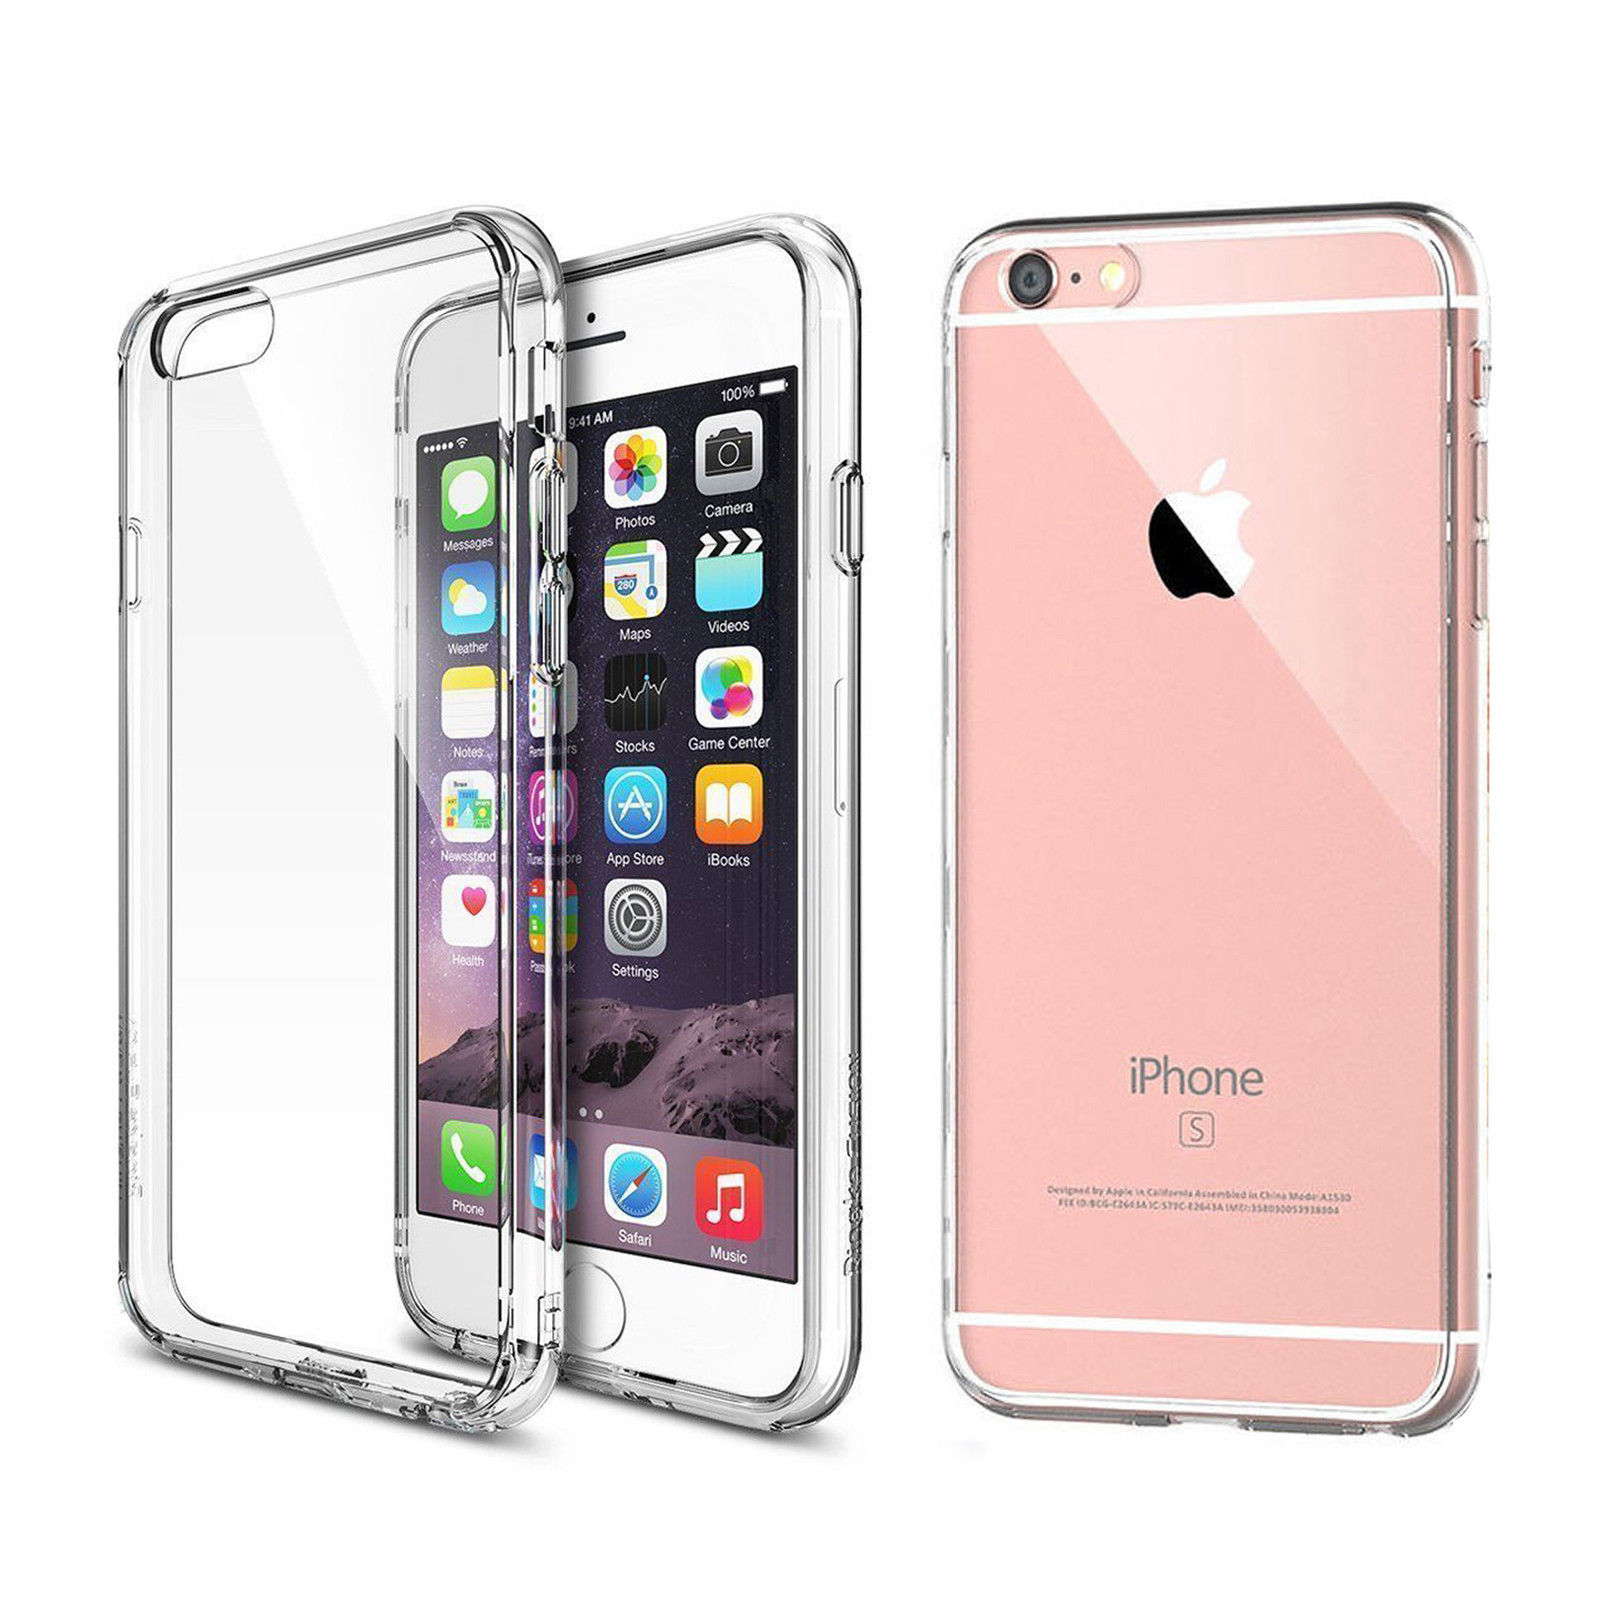 844a4afd1b0 Transparent Clear Case for IPhone 8 5 5s 6 6s Plus 7 7plus Soft Silica Gel  TPU Case Silicone Cover Ultra Thin Mobile Phone Case